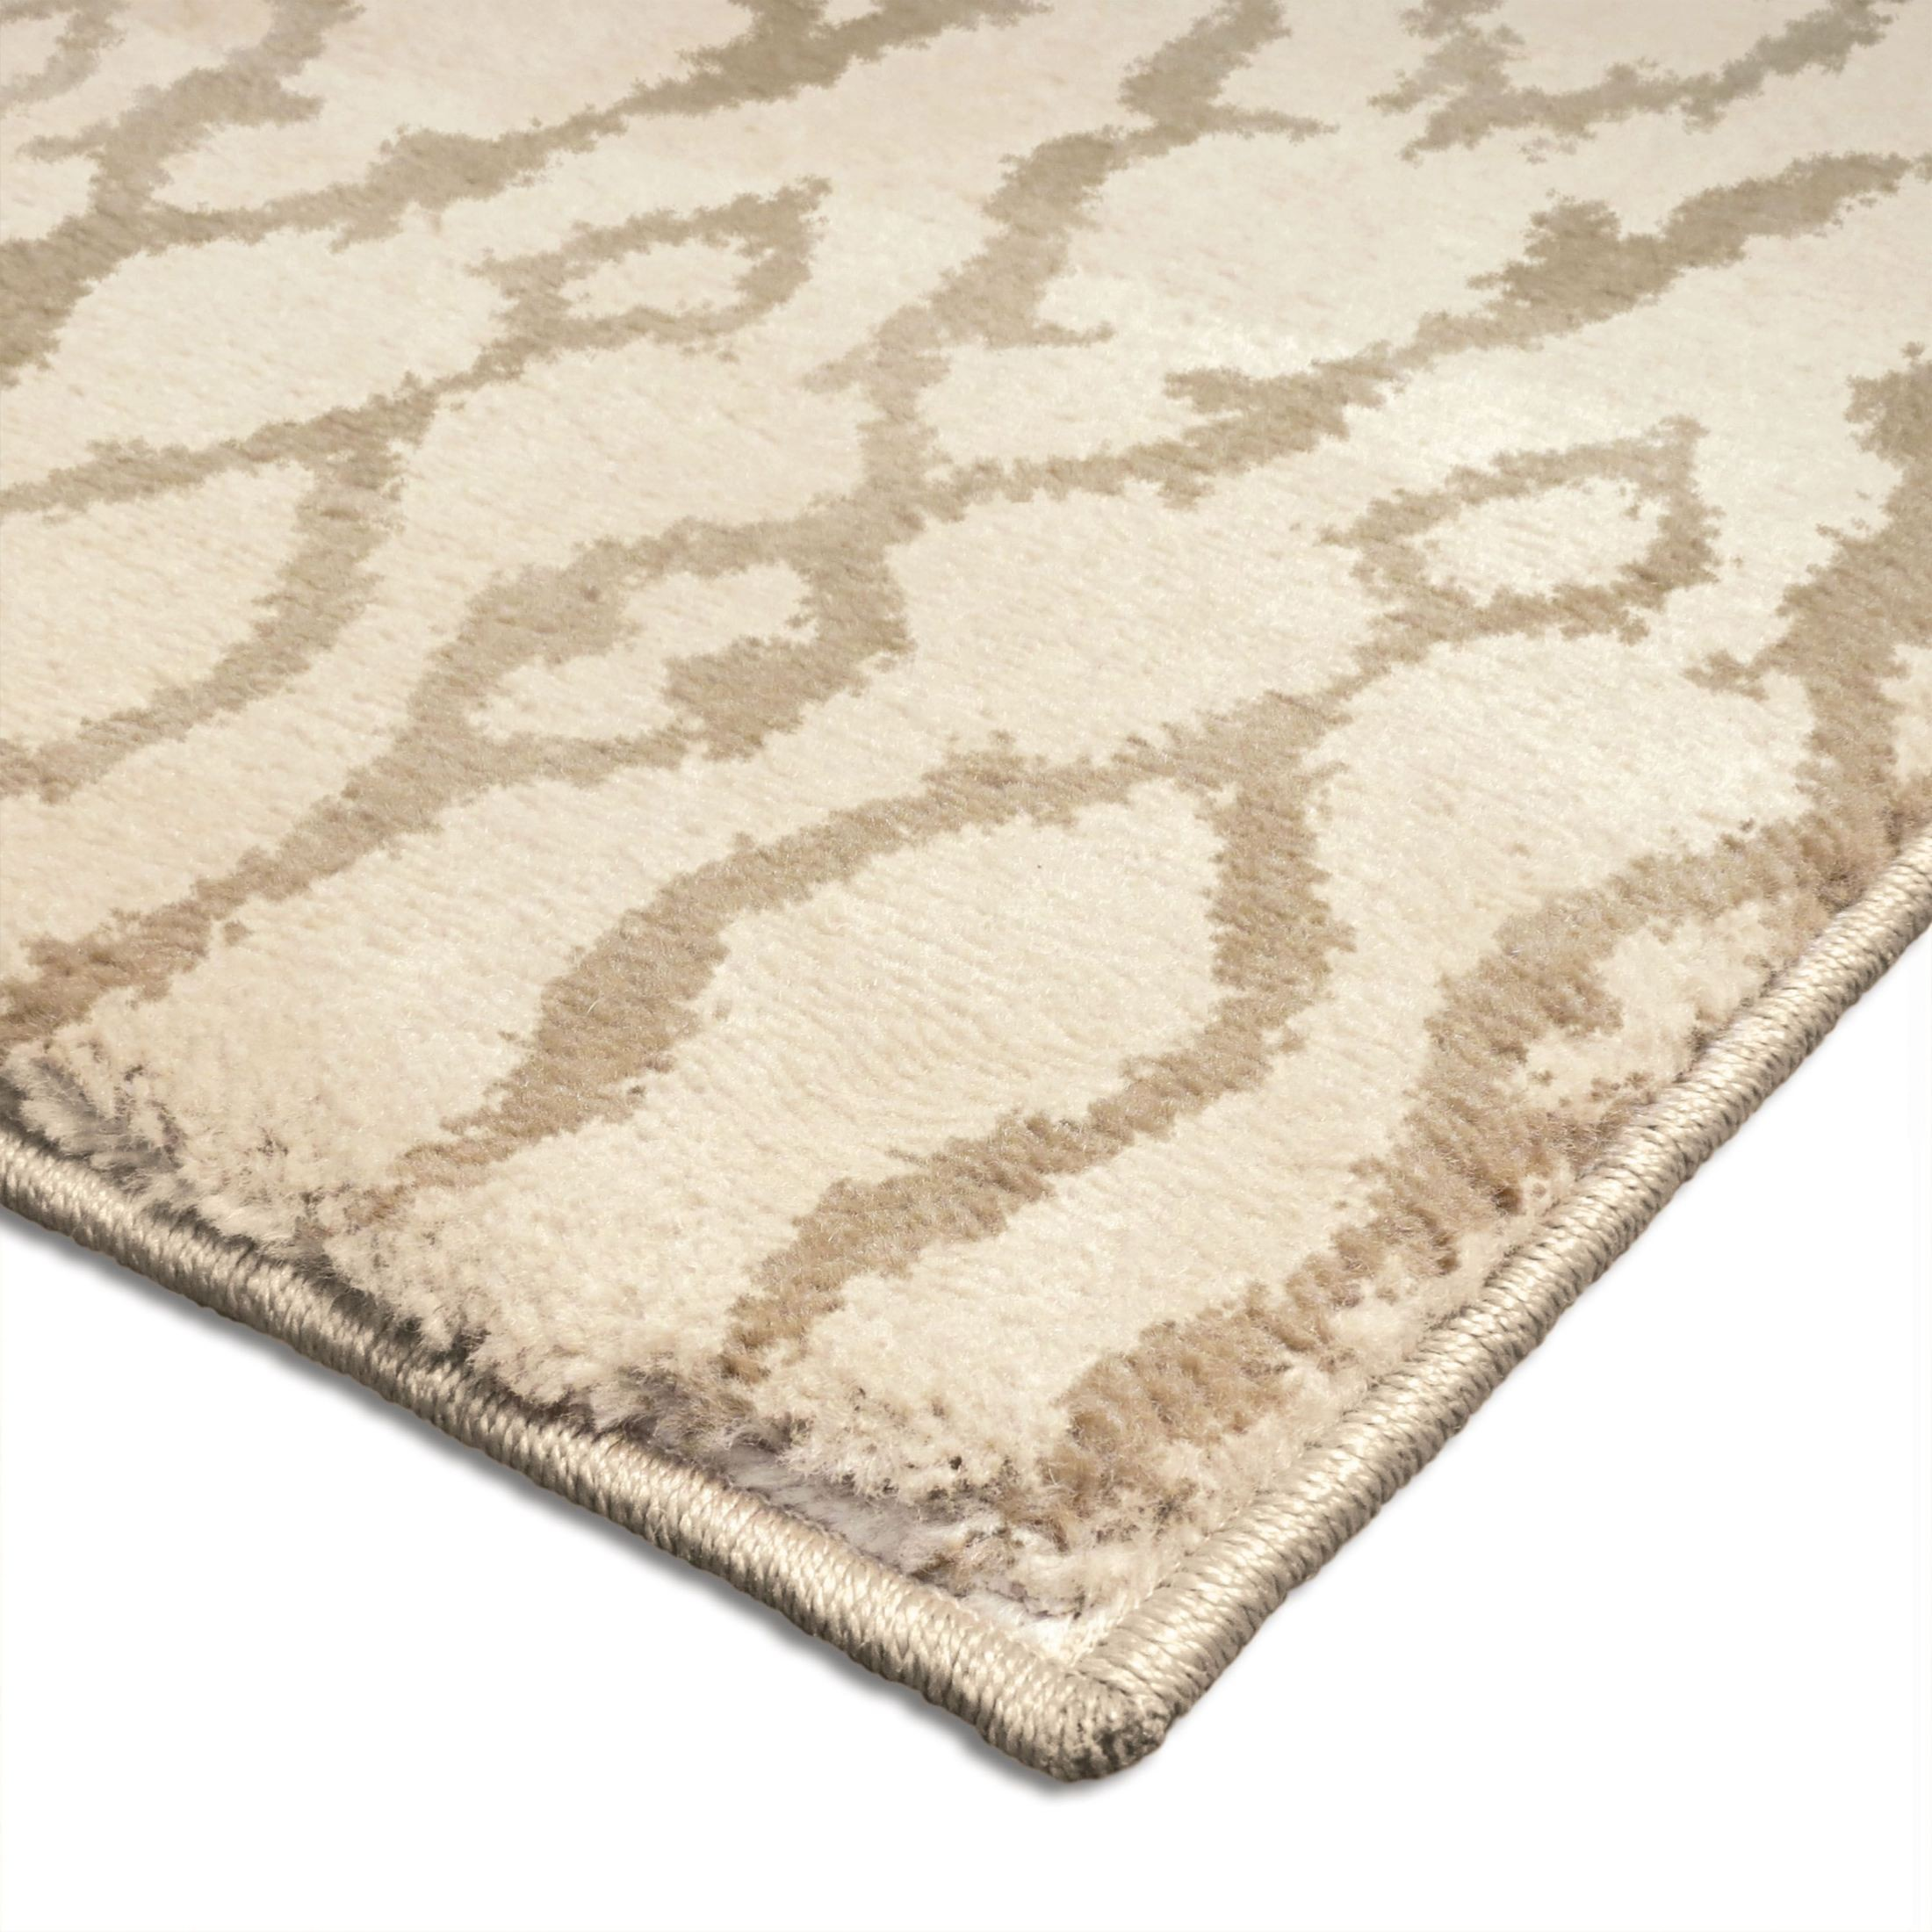 Orian Rugs Plush Abstract Alagara Ivory Area Large Rug